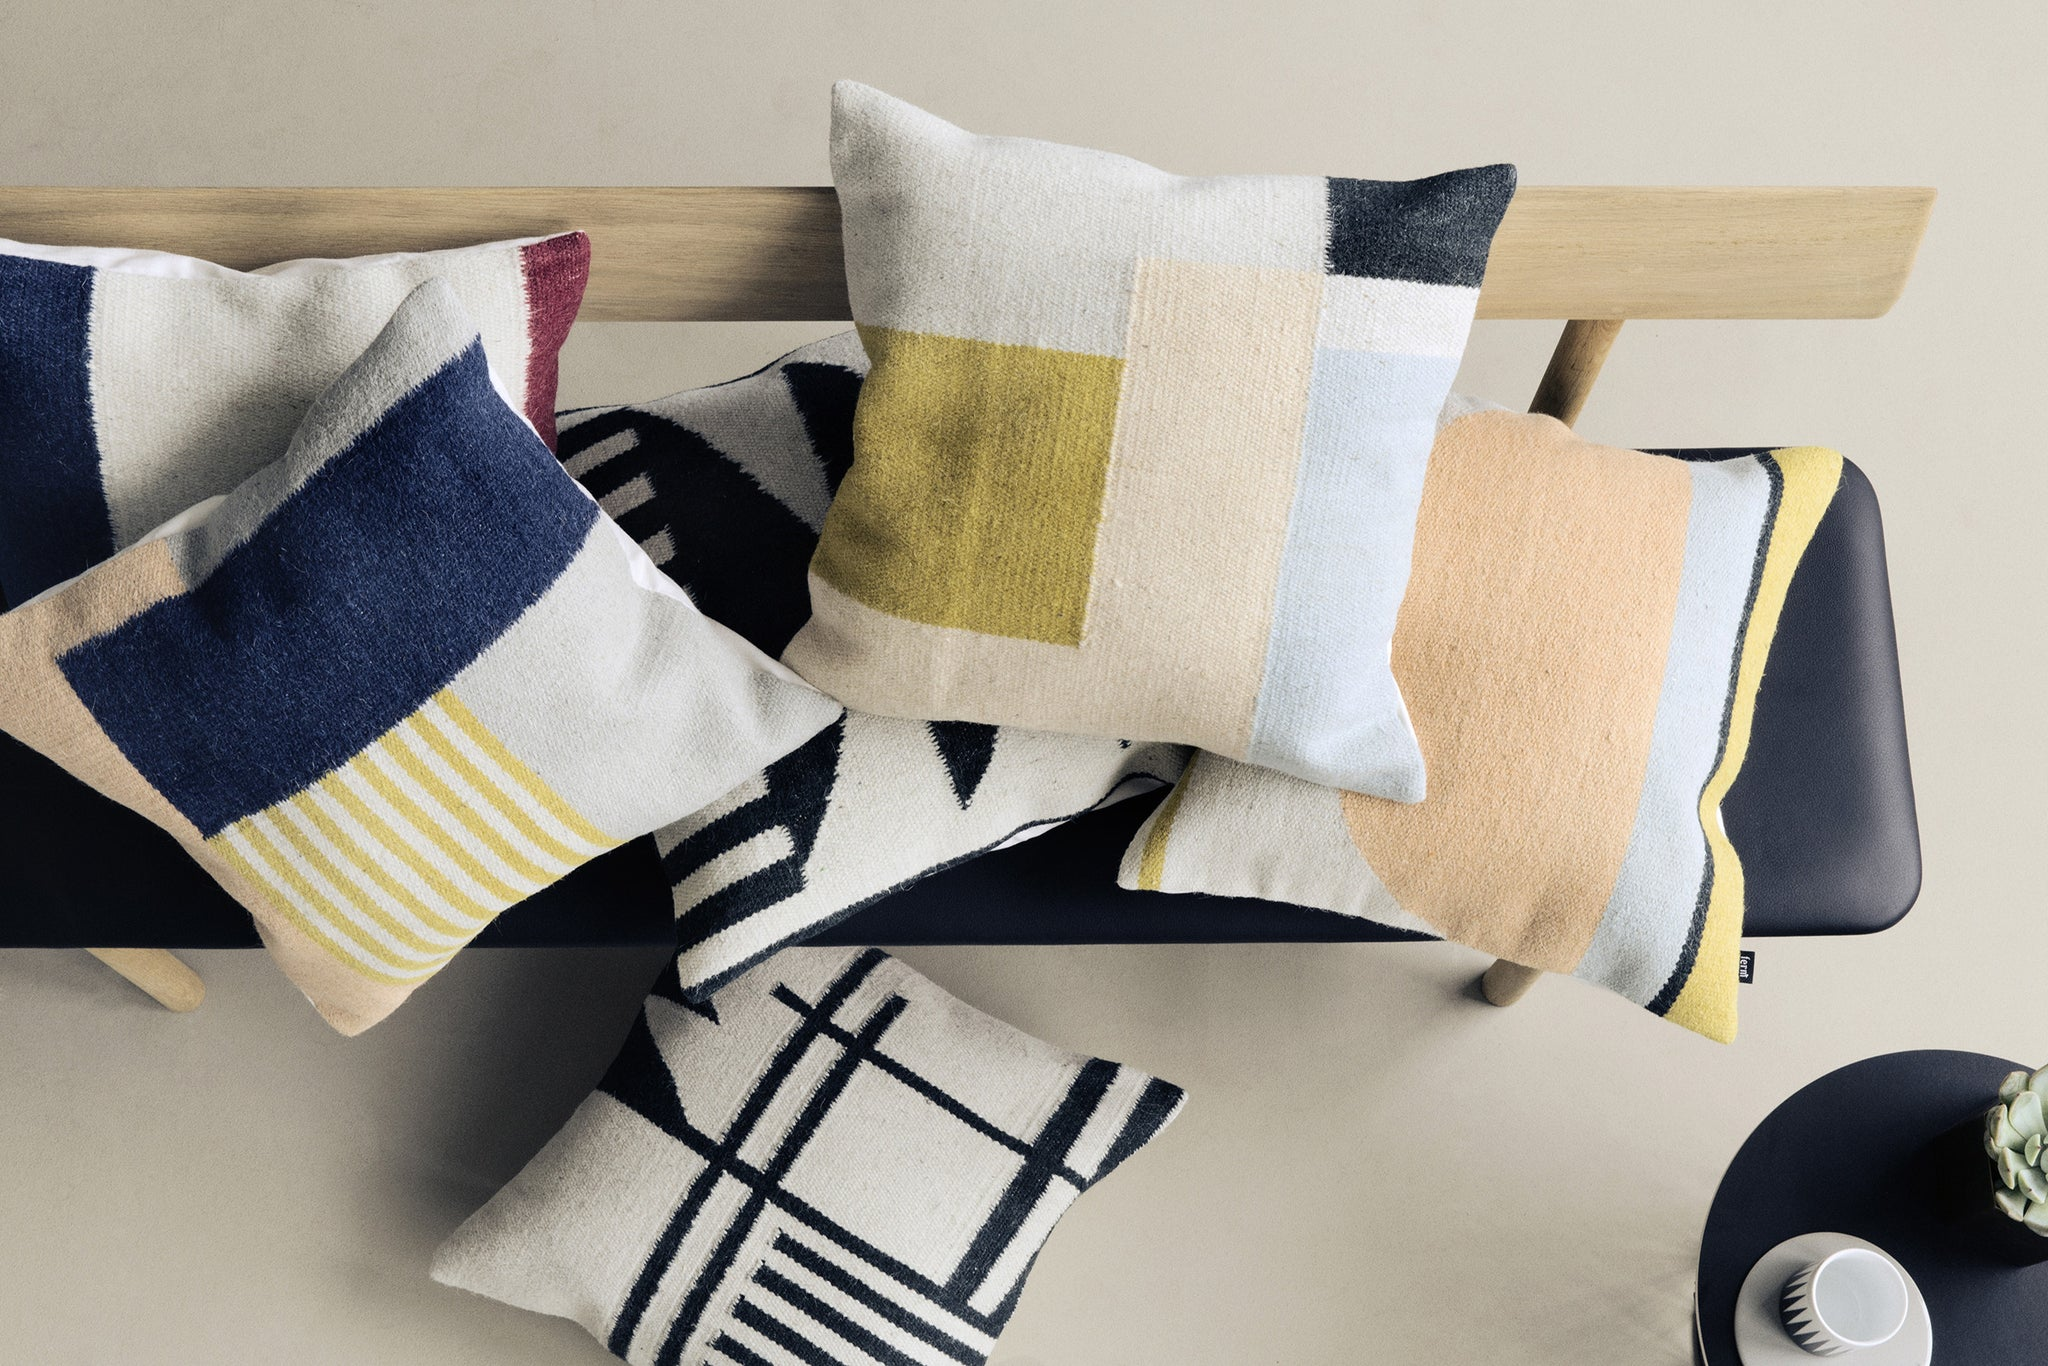 FERM LIVING Kelim Cushions from Someday Design